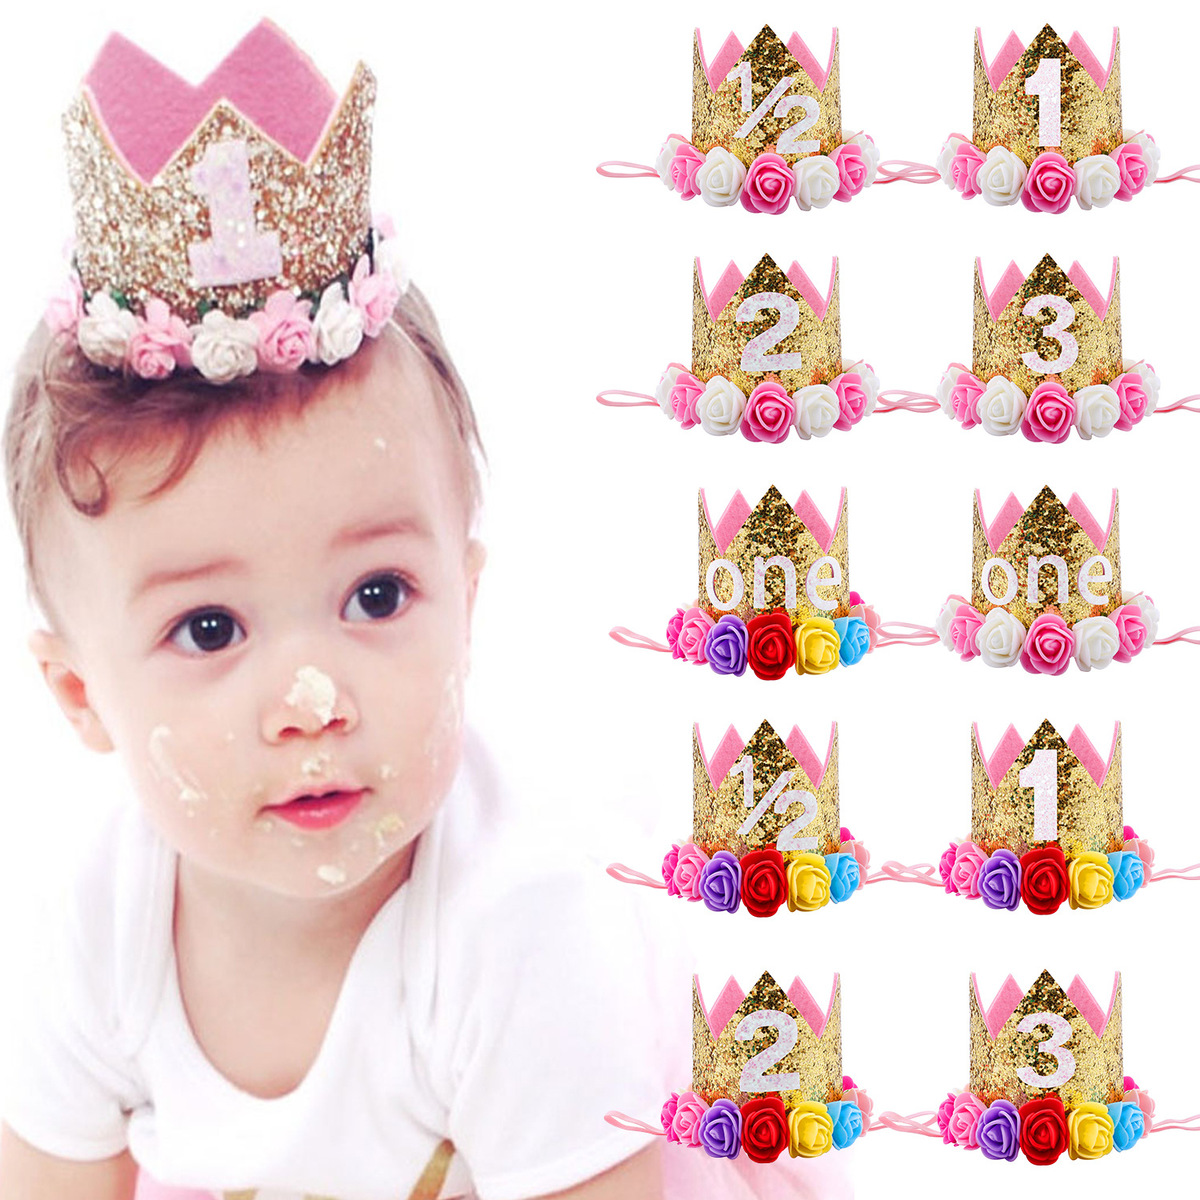 Online Shop First Birthday Crown Birthday Outfit 30th Birthday crown adult  cake smash Pale Gold + Pink Adult Crown Headband Photo Props  bc733e840167